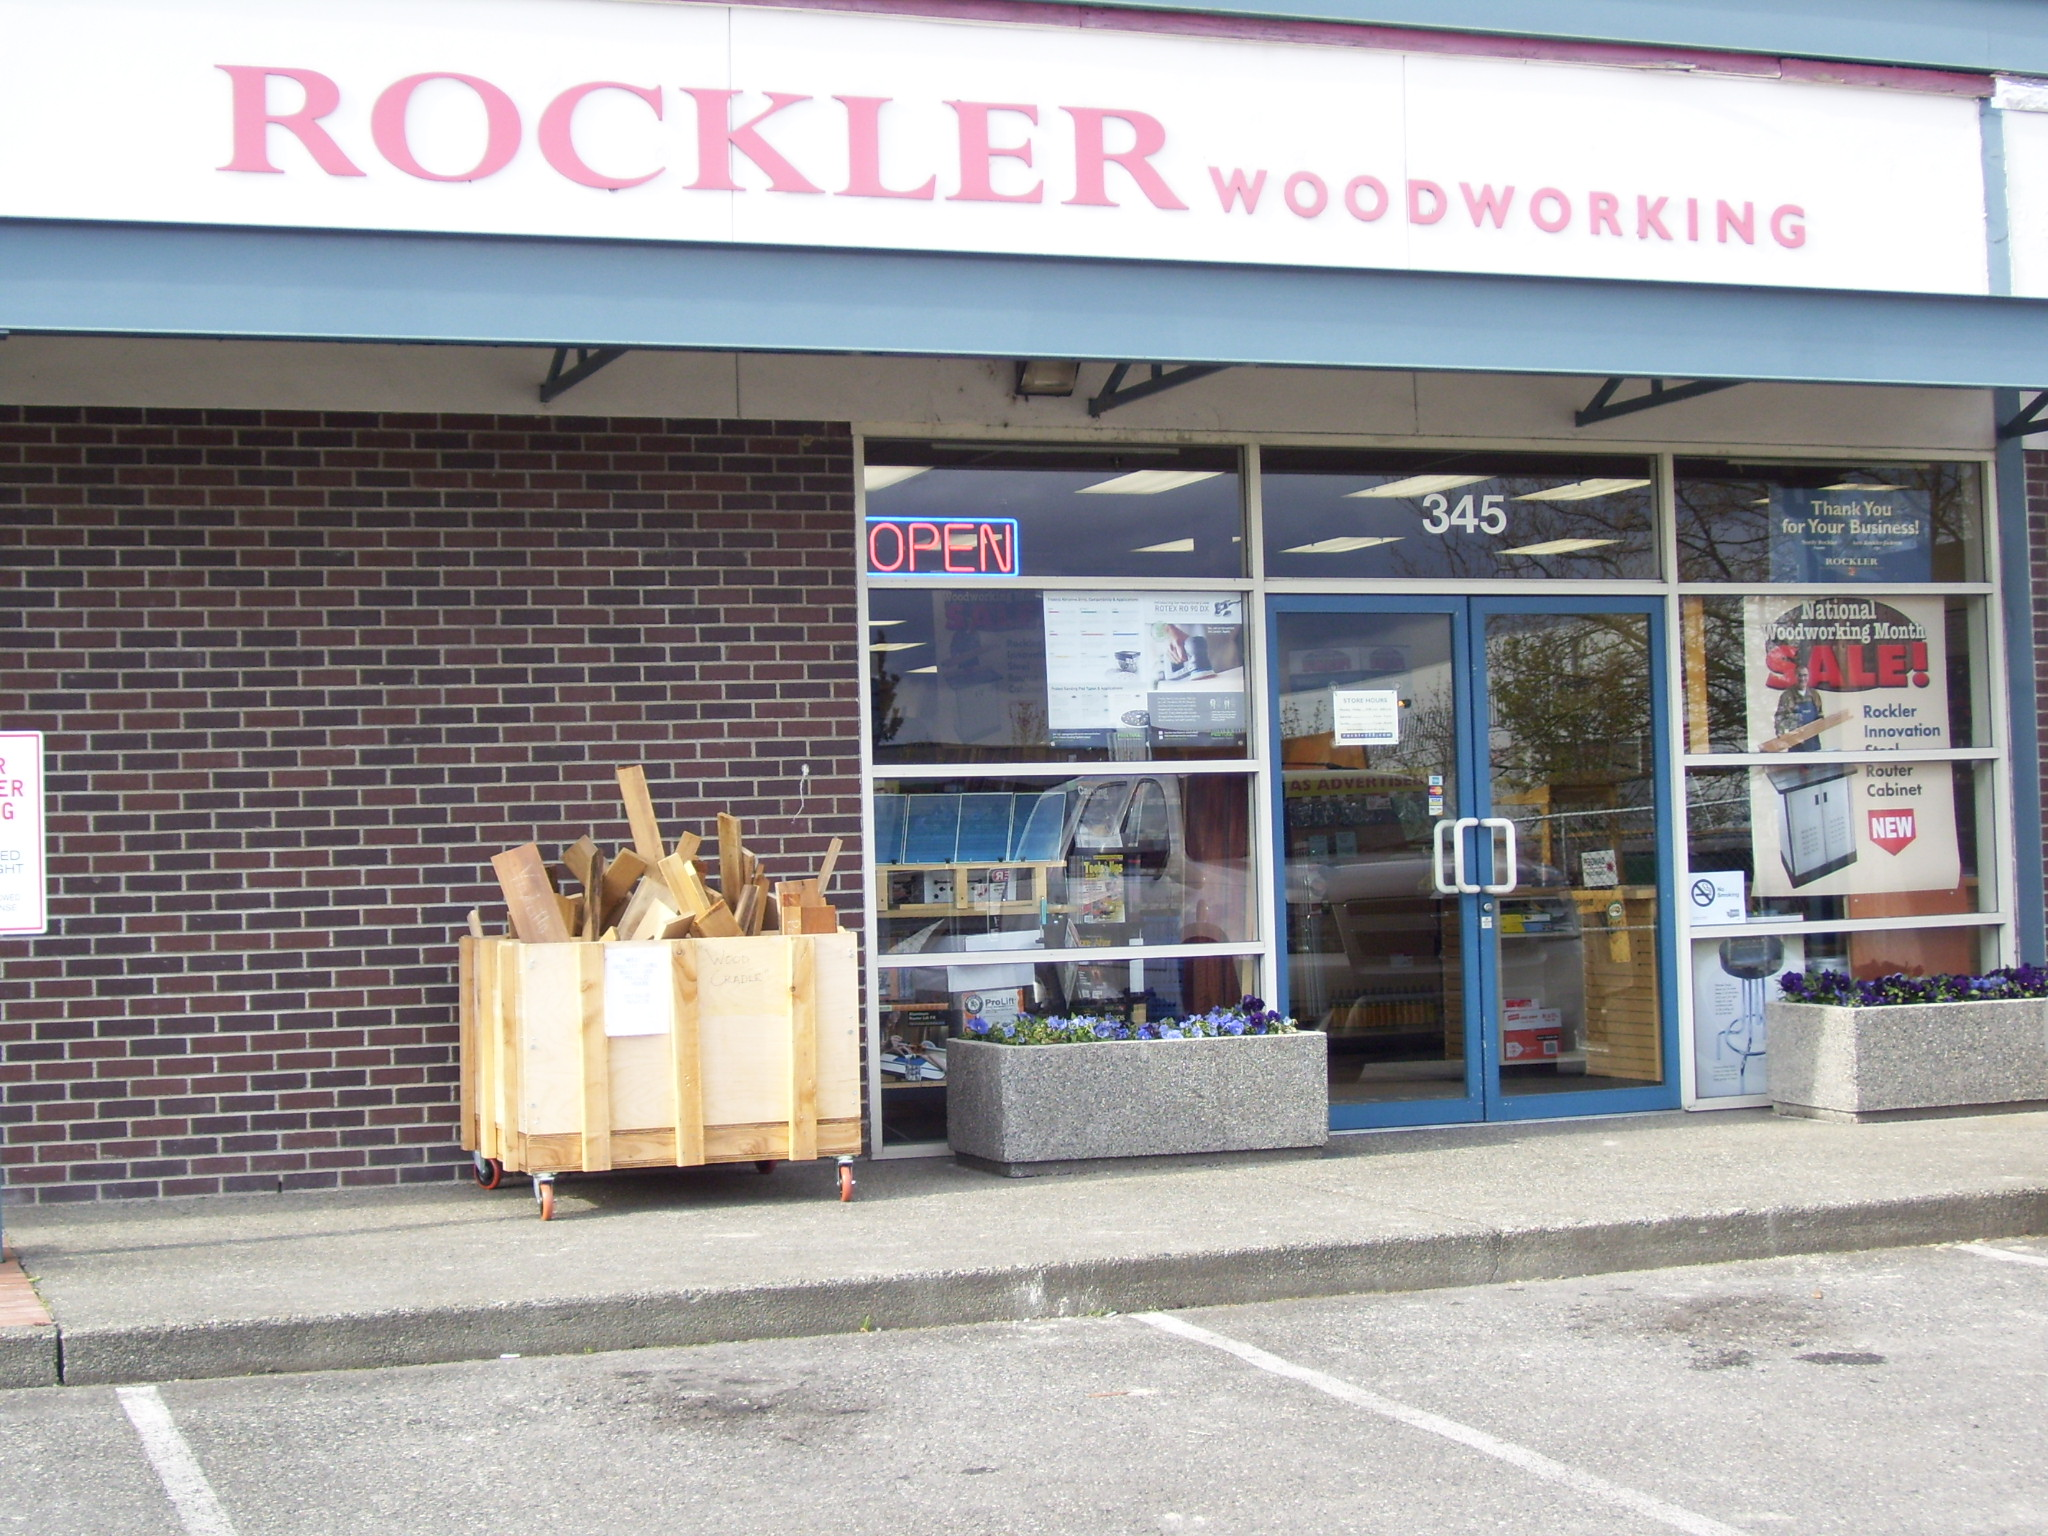 Visit Our Tukwila Rockler Location To Shop Our Quality Selection Of Exotic  Lumber, Specialty Wood